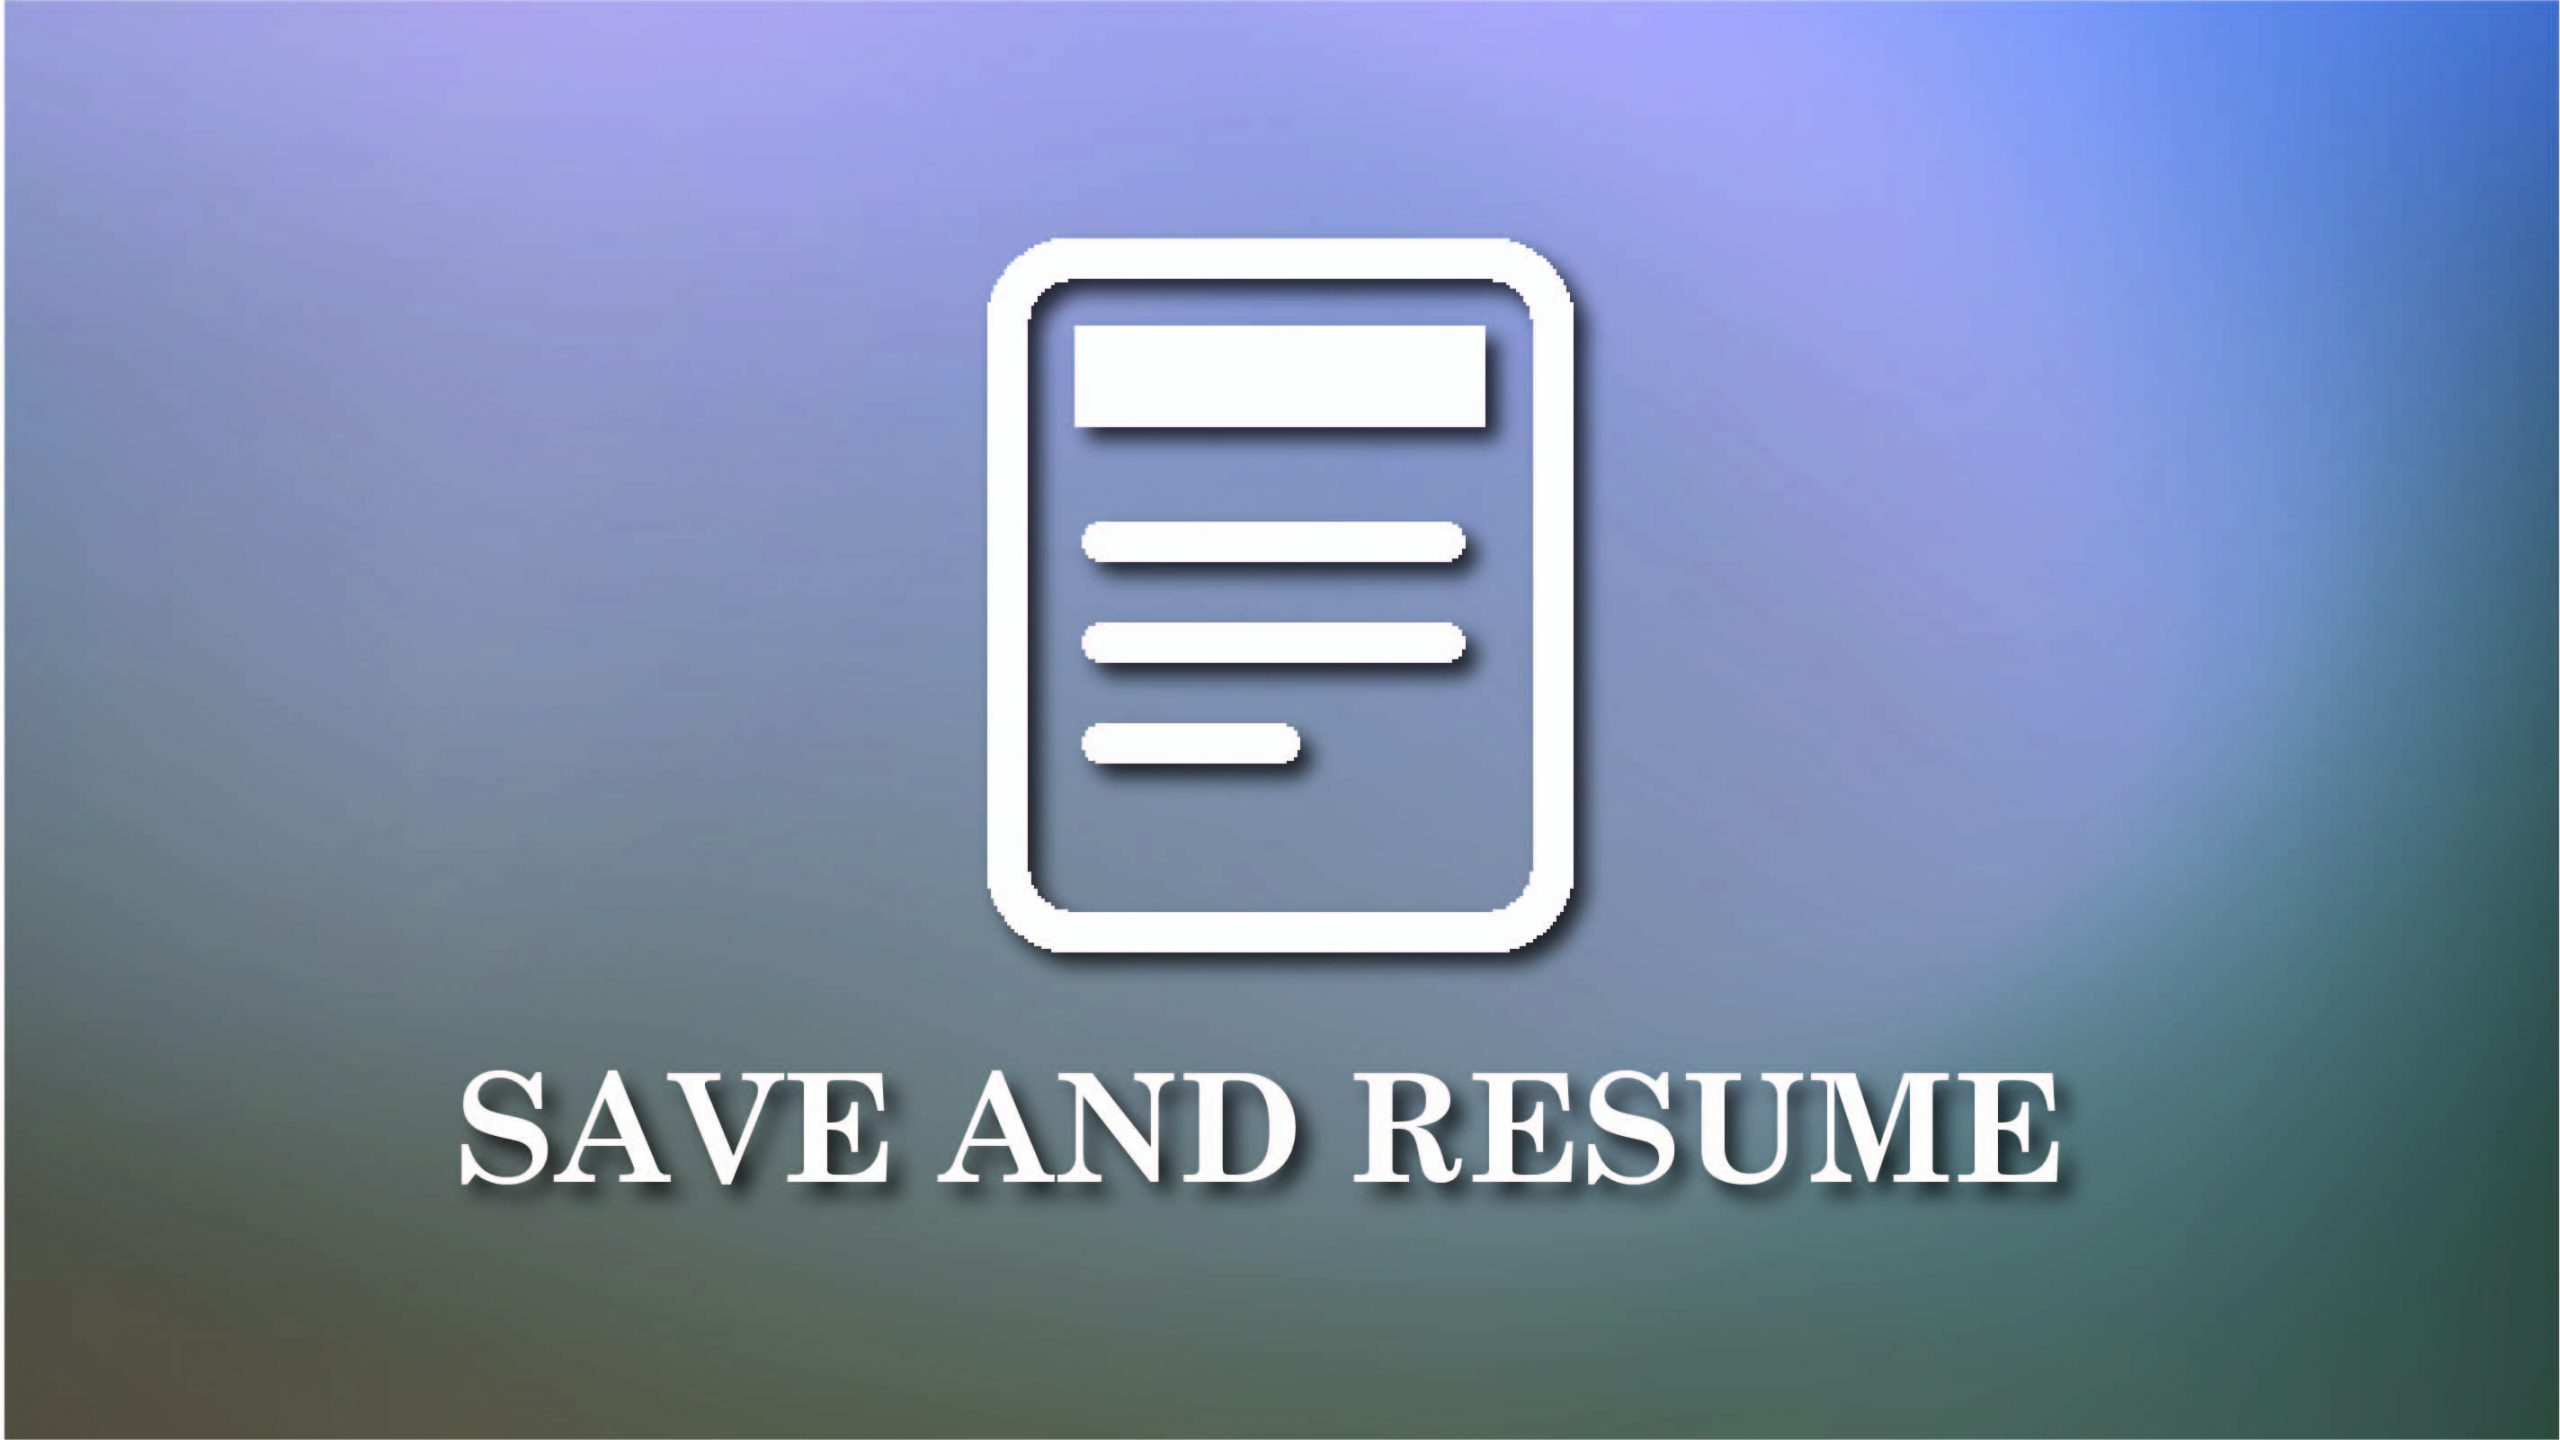 Save and Resume